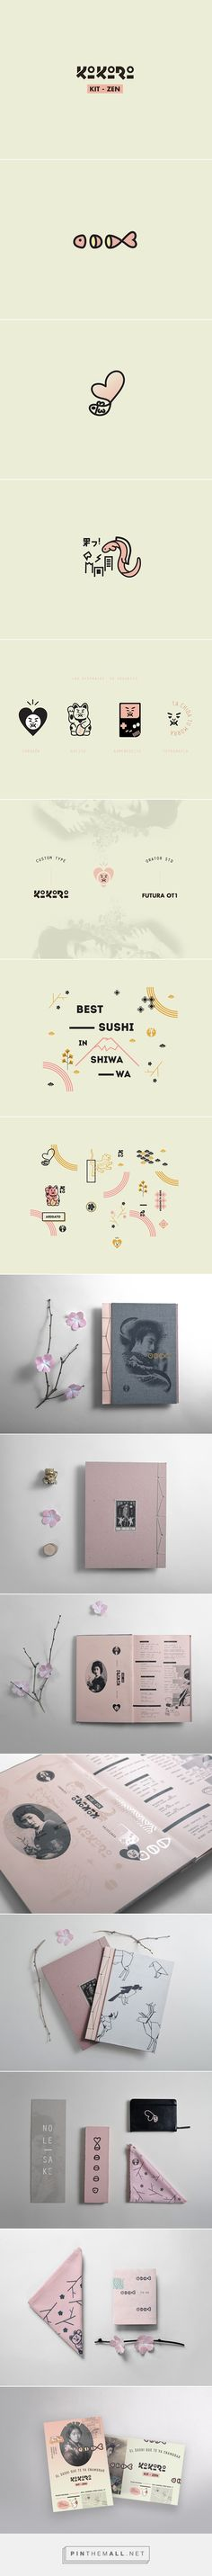 Kokoro kit zen on Behance | Fivestar Branding – Design and Branding Agency & Inspiration Gallery